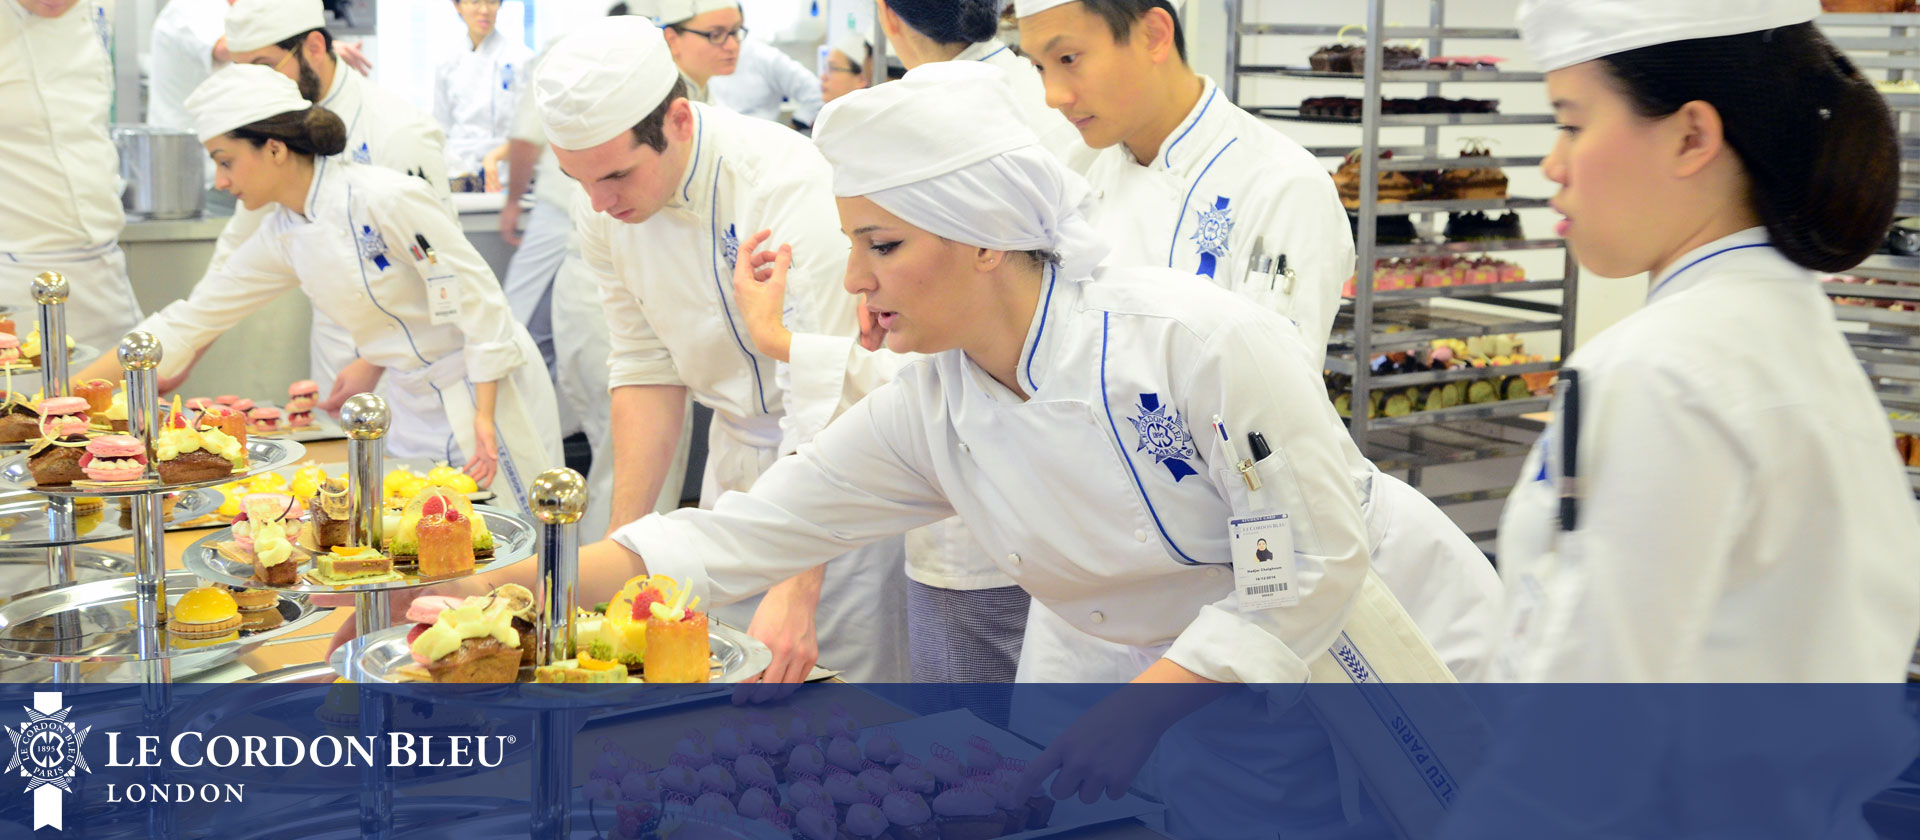 Paul Rhodes at Le Cordon Bleu London